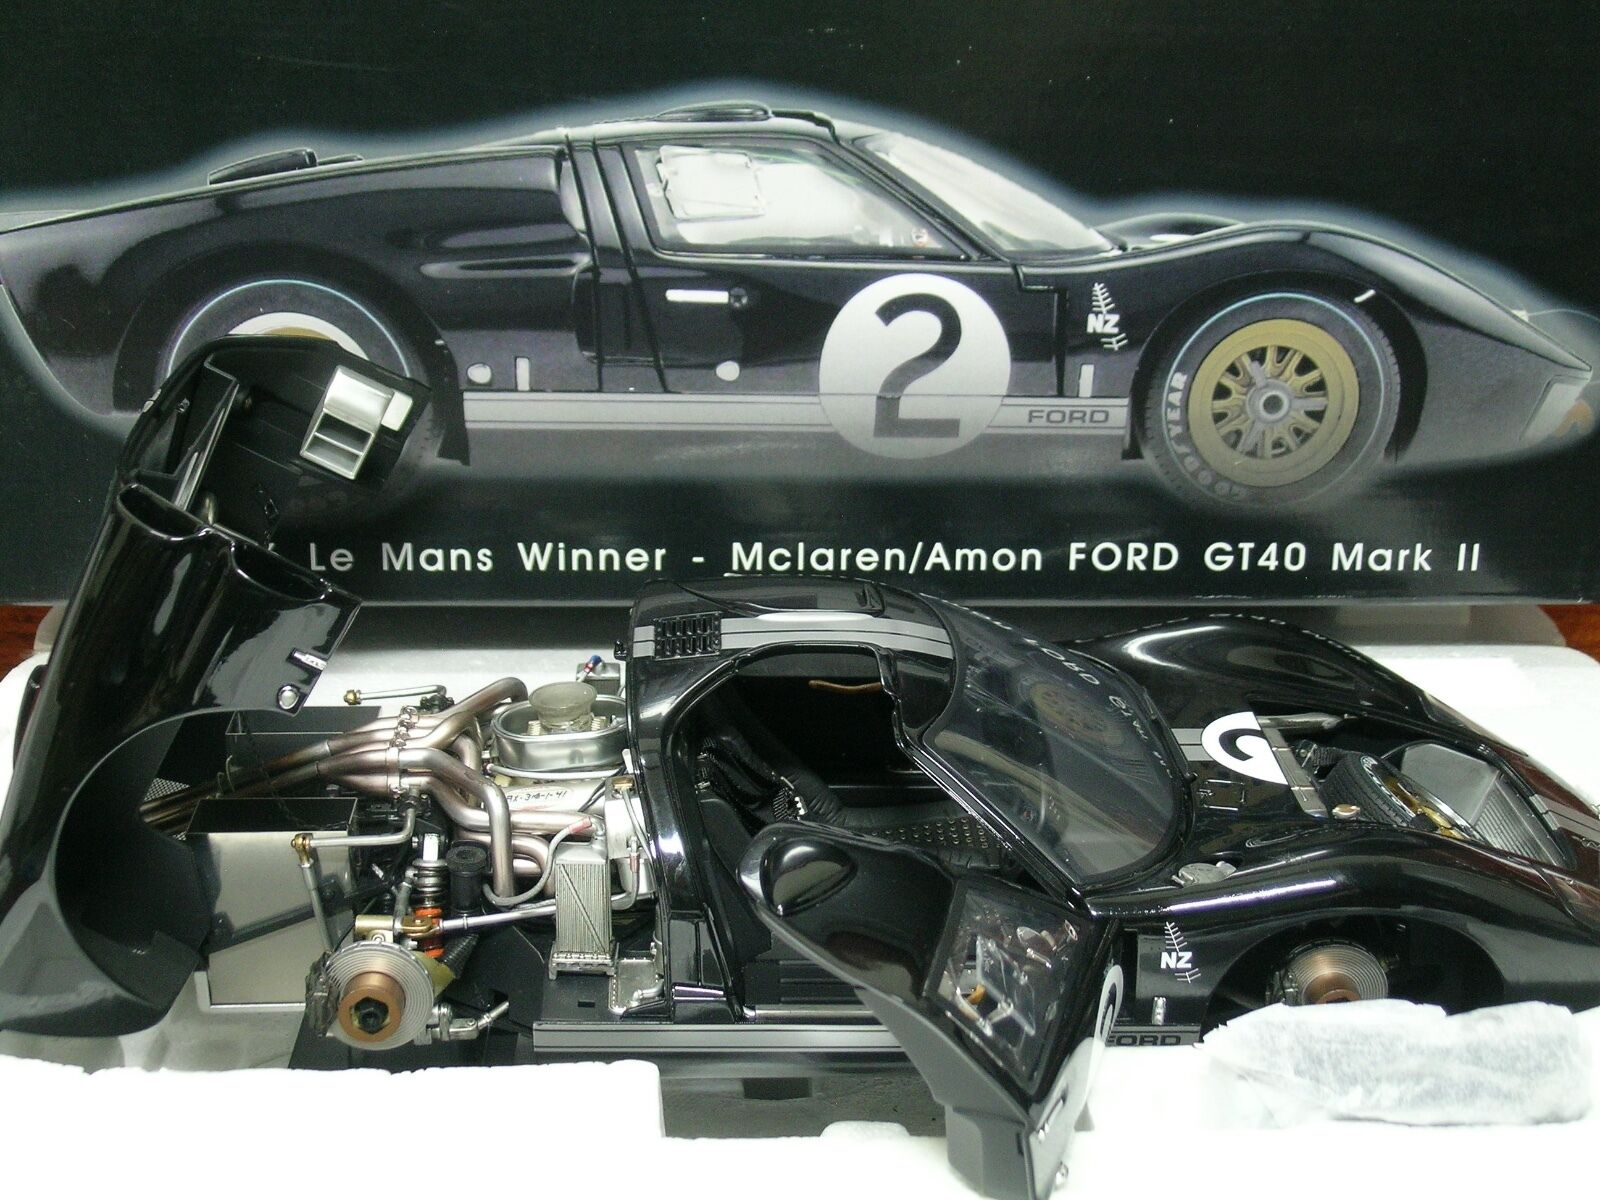 GMP 1 12 SCALE SCALE SCALE 1966 LE MANS WINNER - MCLAREN AMON FORD GT40 MARK II 682a8d